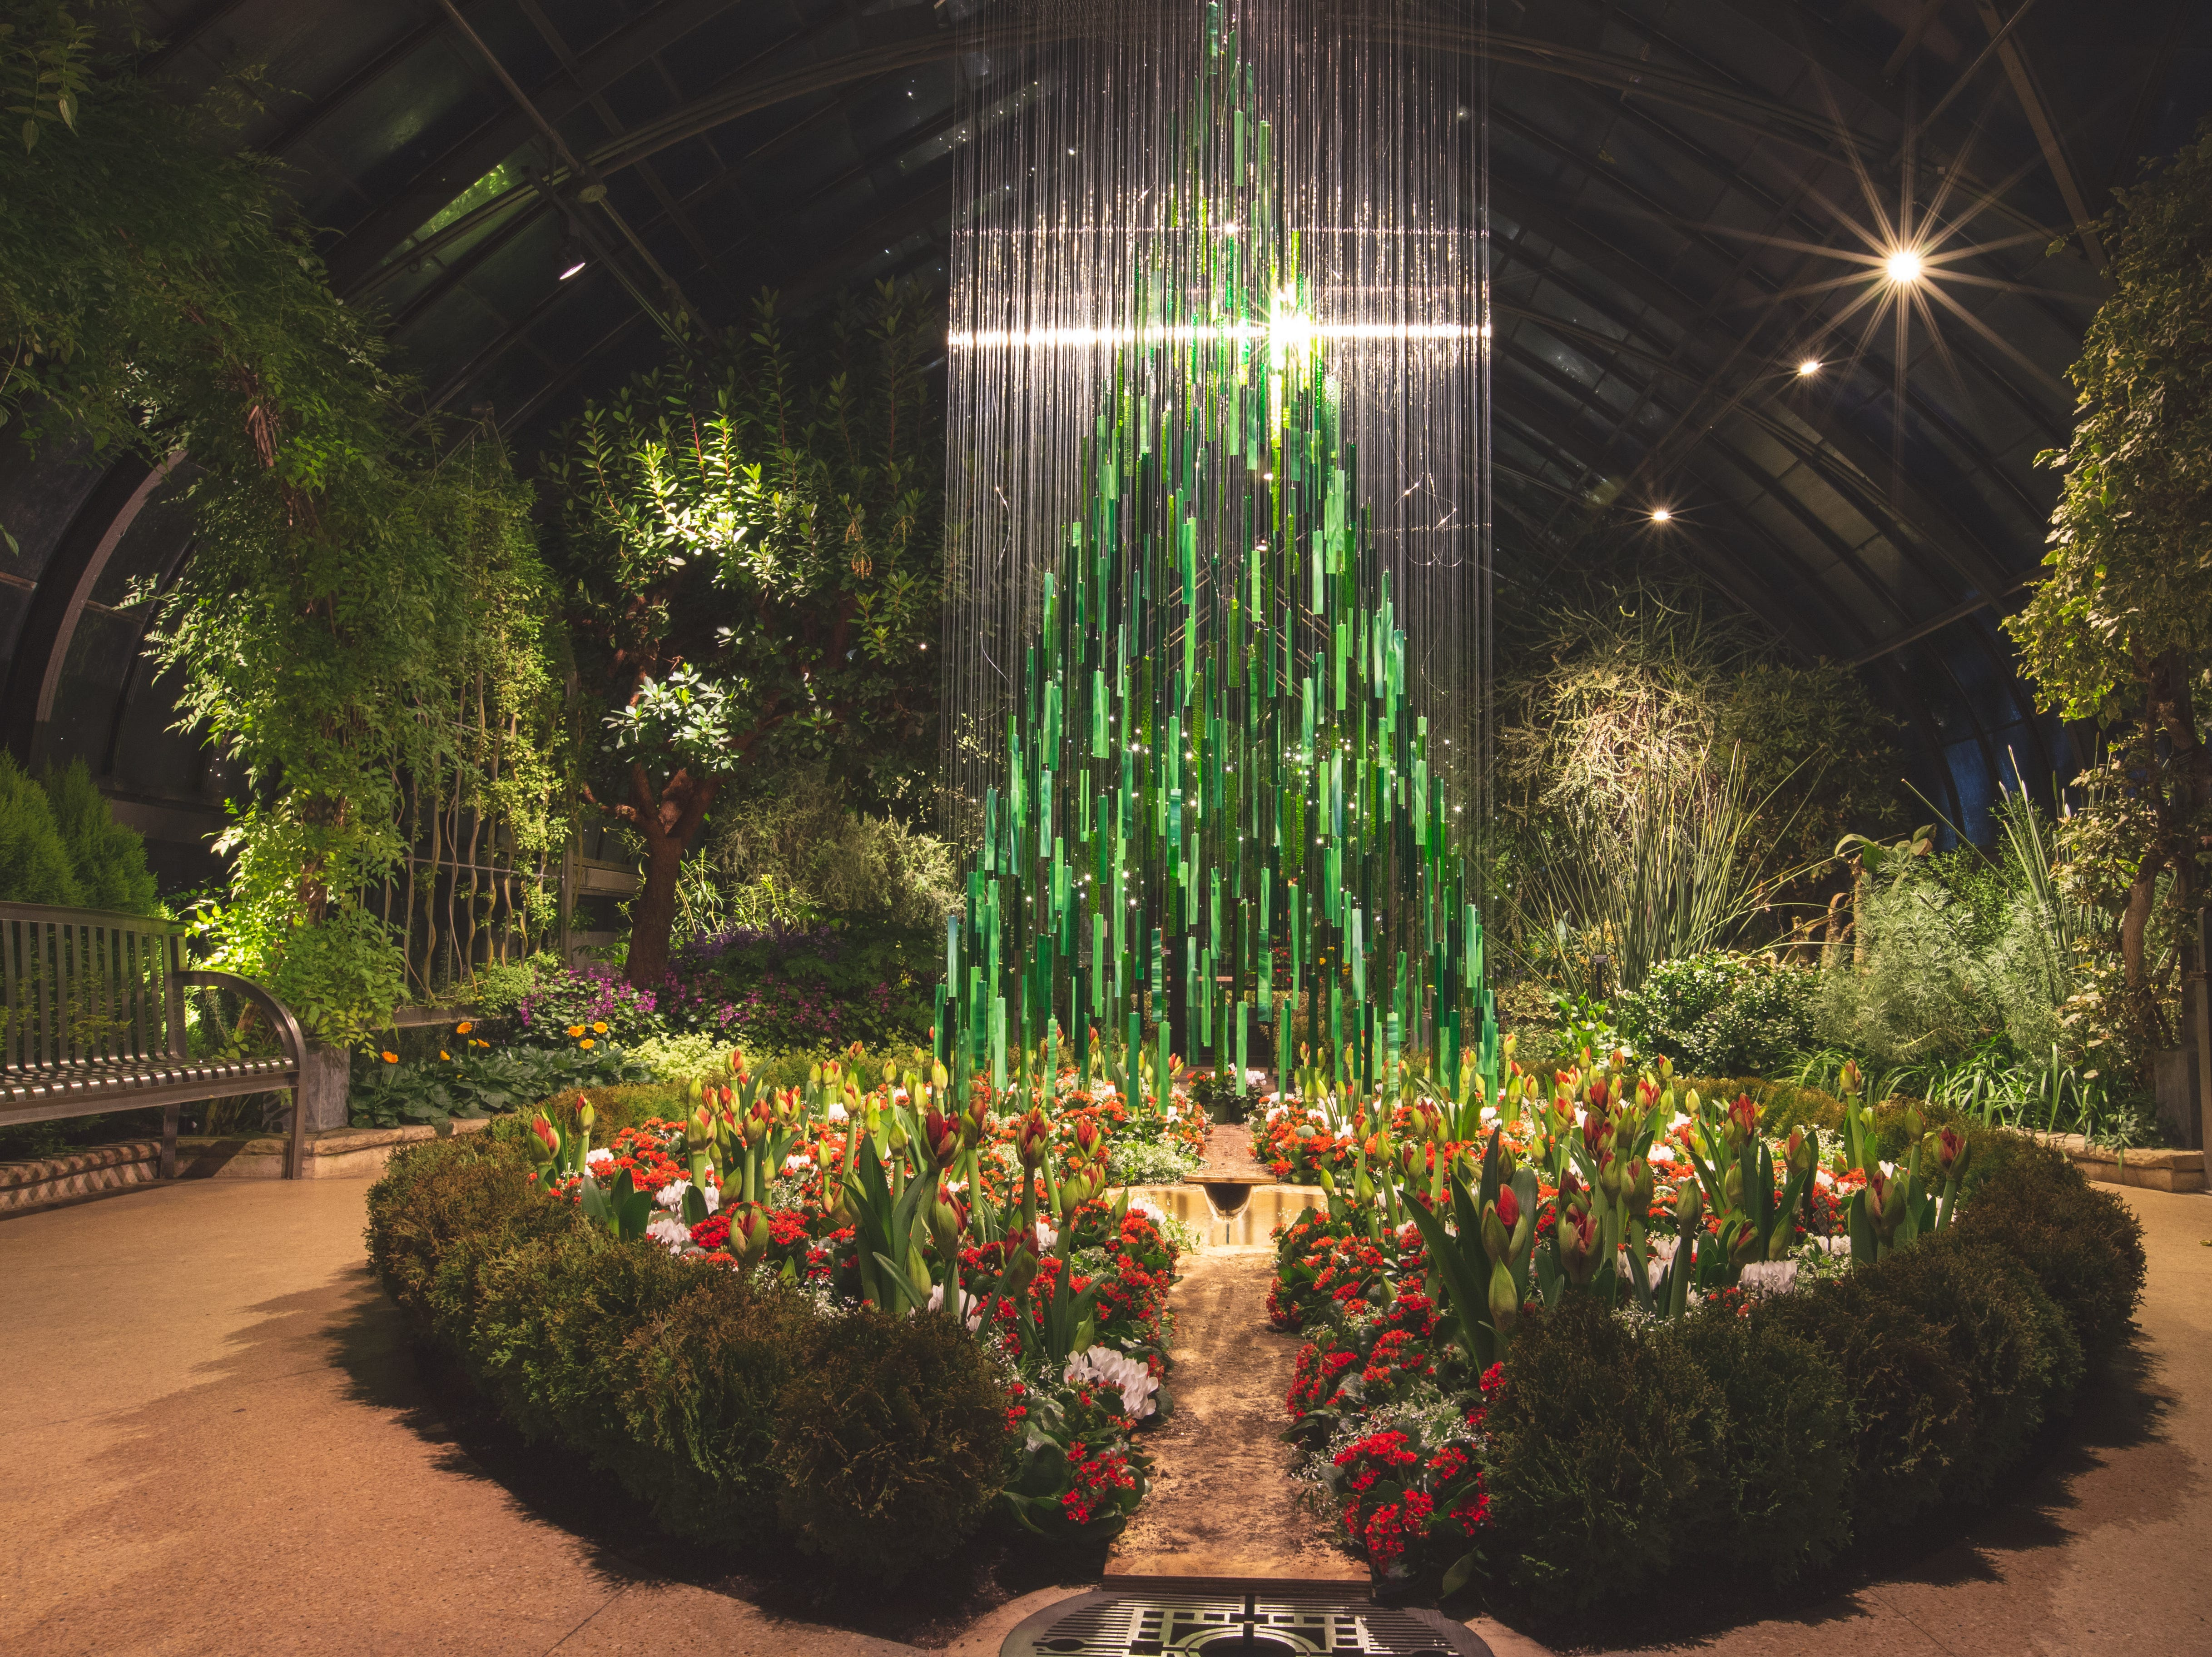 The tree in Longwood's Mediterranean garden is fashioned out of 600 rectangular pieces of glass, stained in various shades of green.